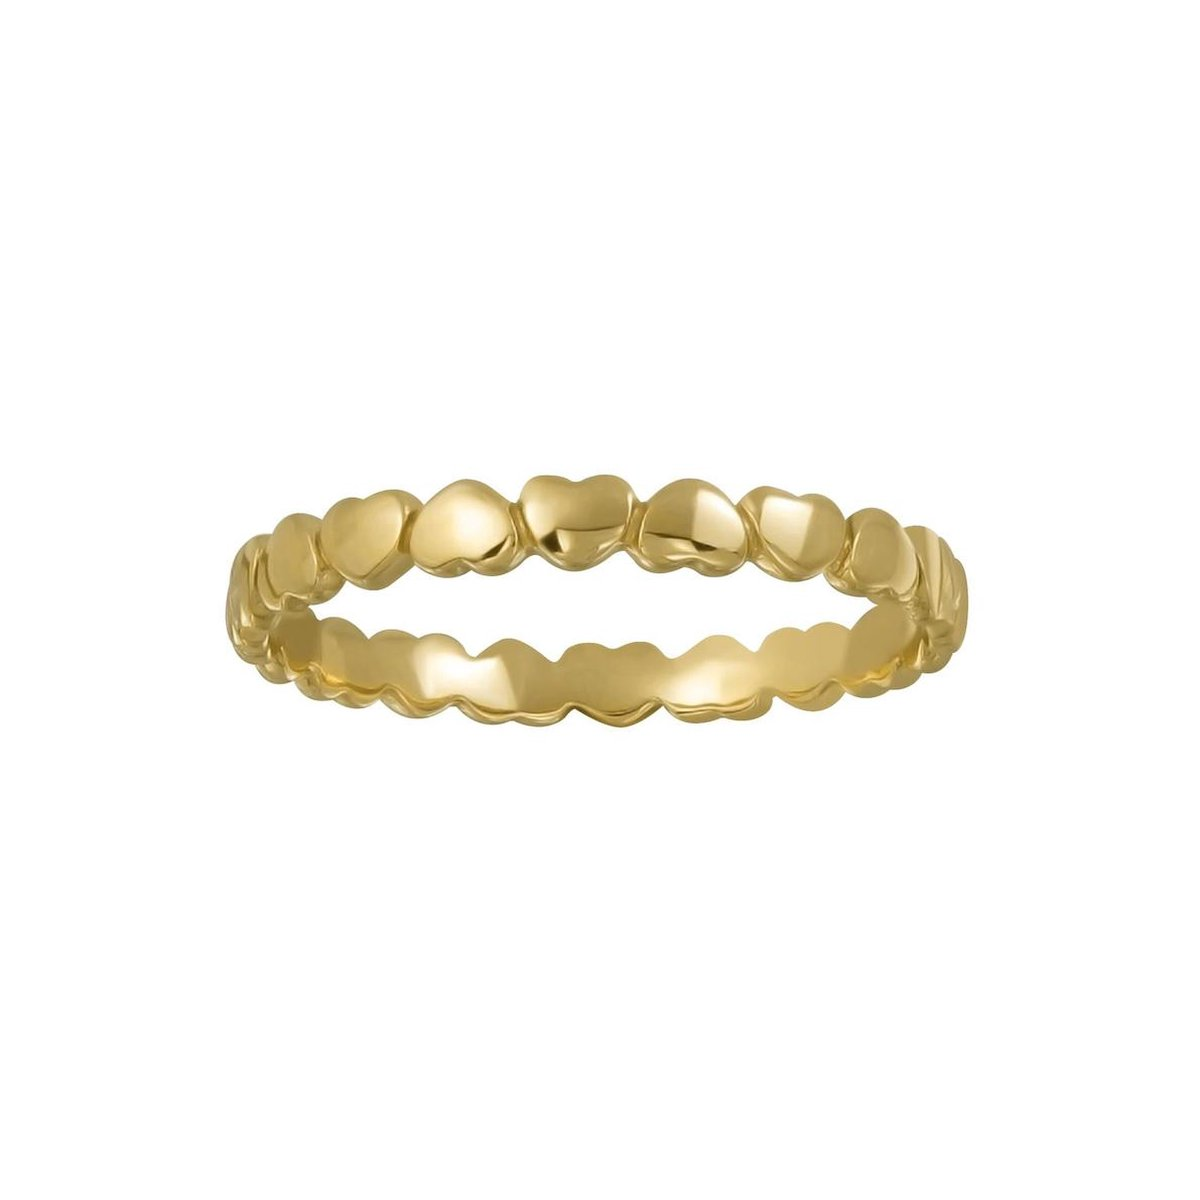 Ringen dames | Gold plated ring, aaneengeschakelde hartjes